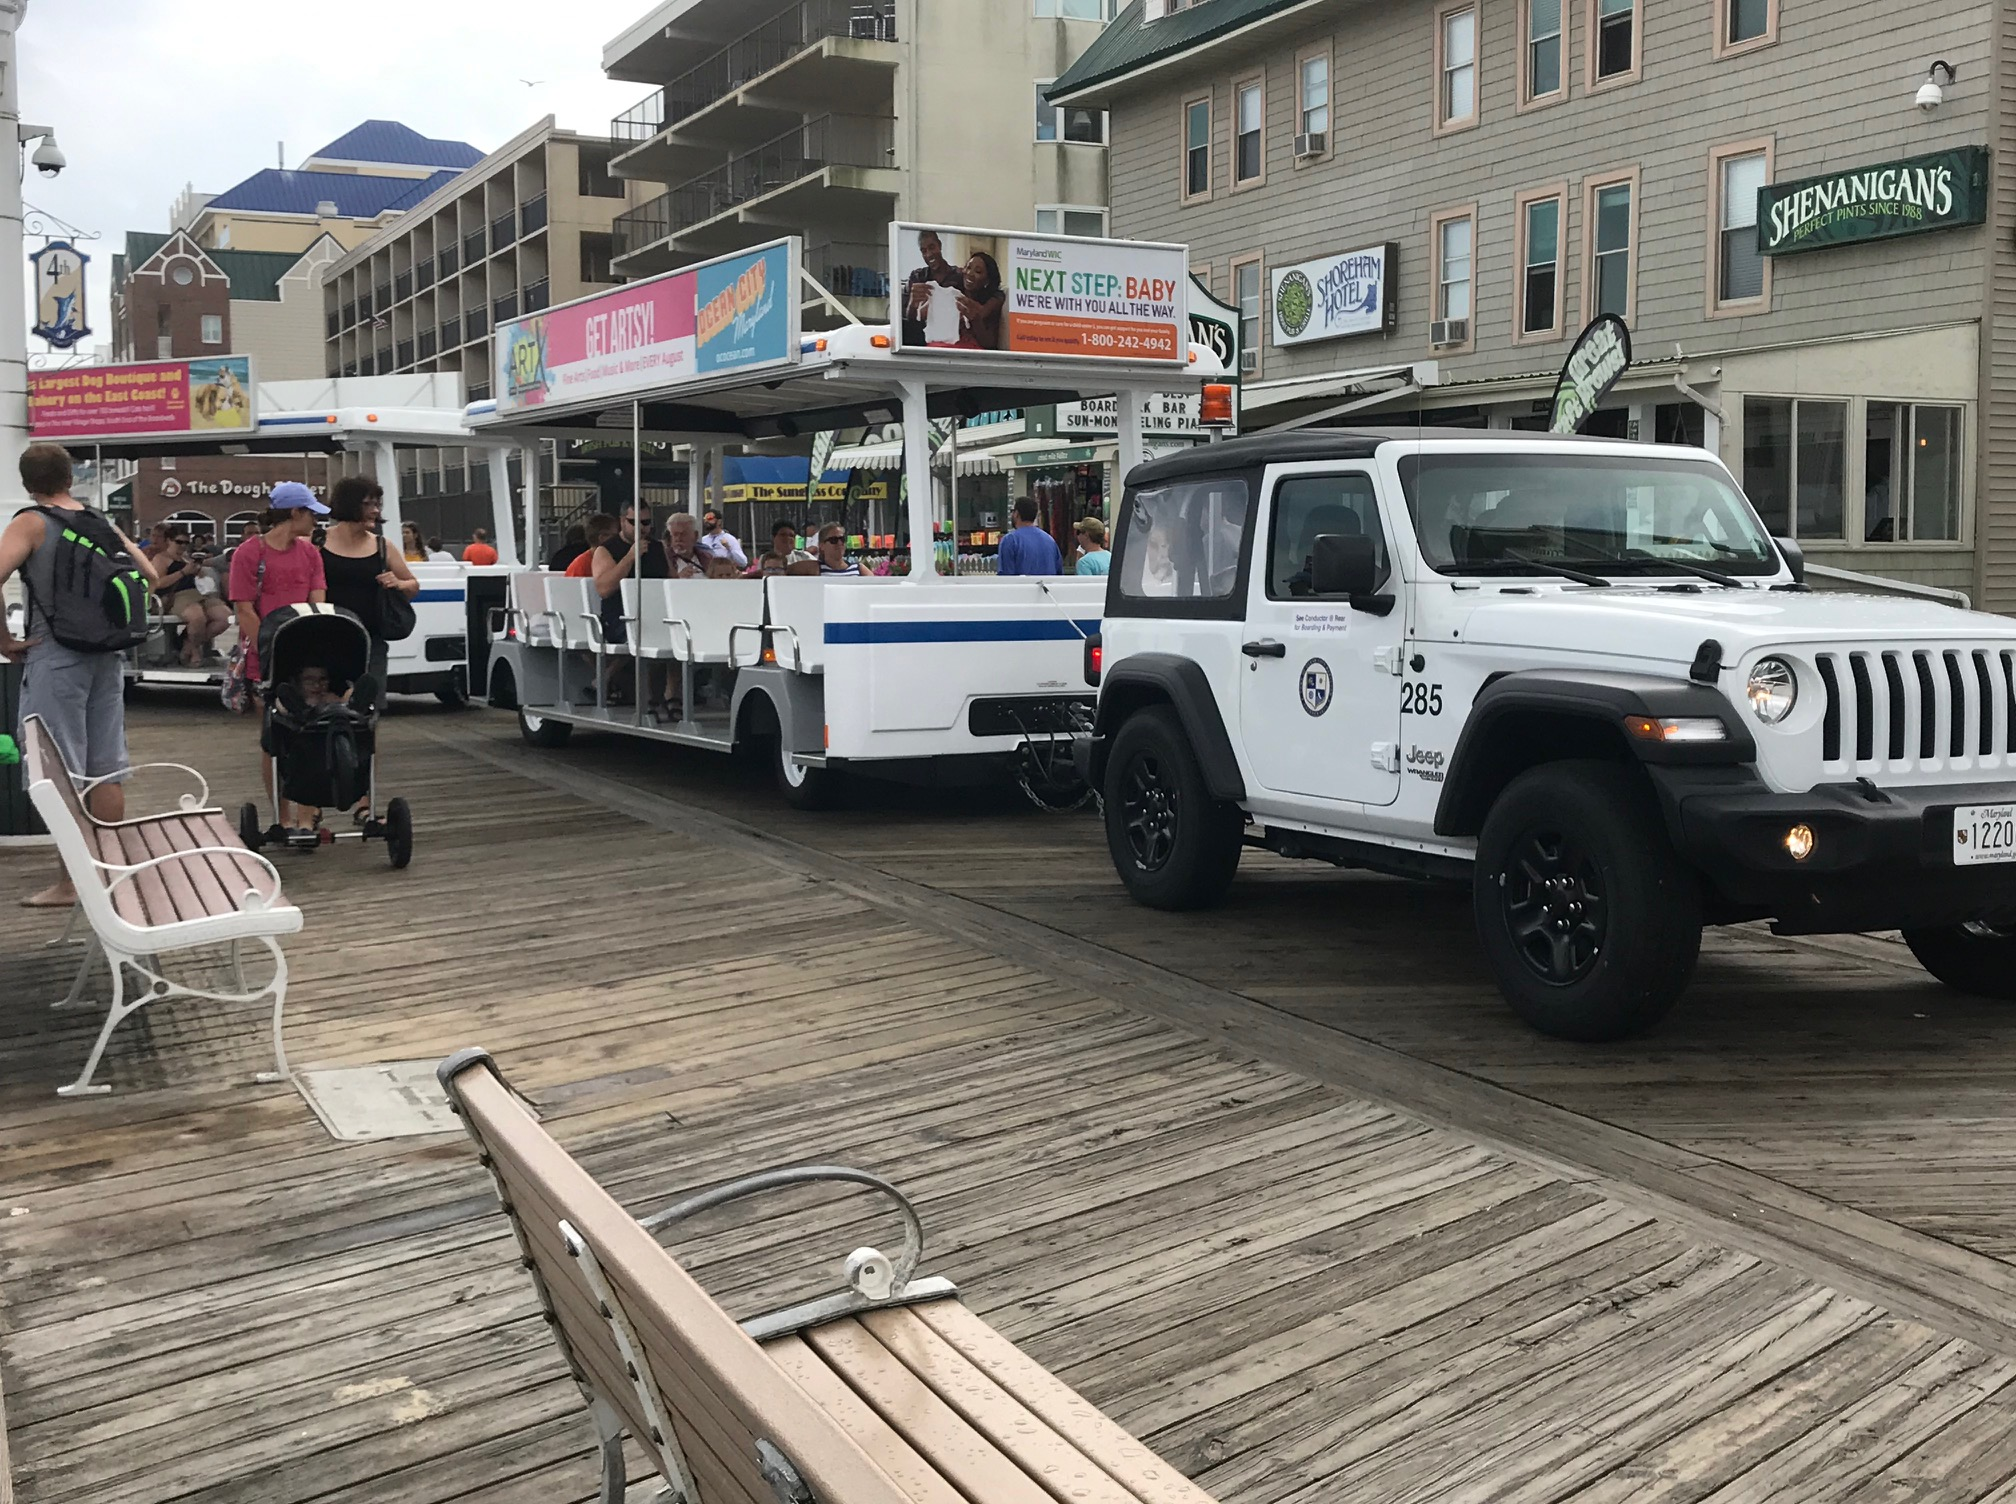 Boardwalk Tram Officially Shut Down For Summer